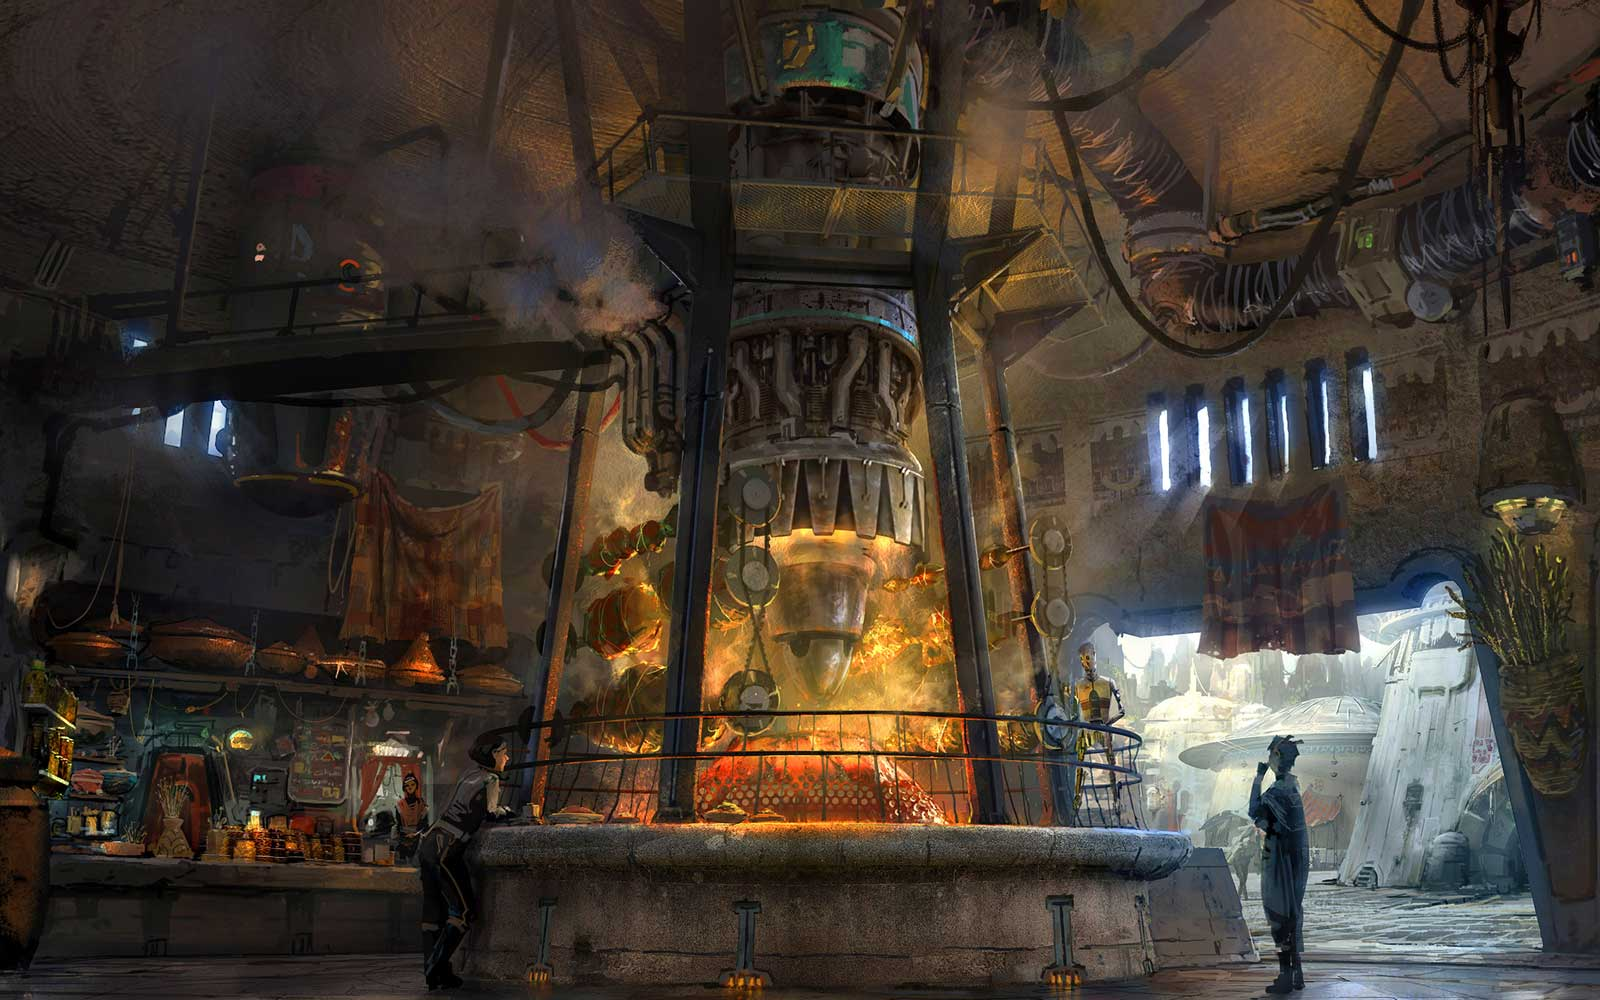 Ronto Roasters will feature savory meats spit-roasted over  a former Podracer engine at Star Wars: Galaxy's Edge. [Concept Art]